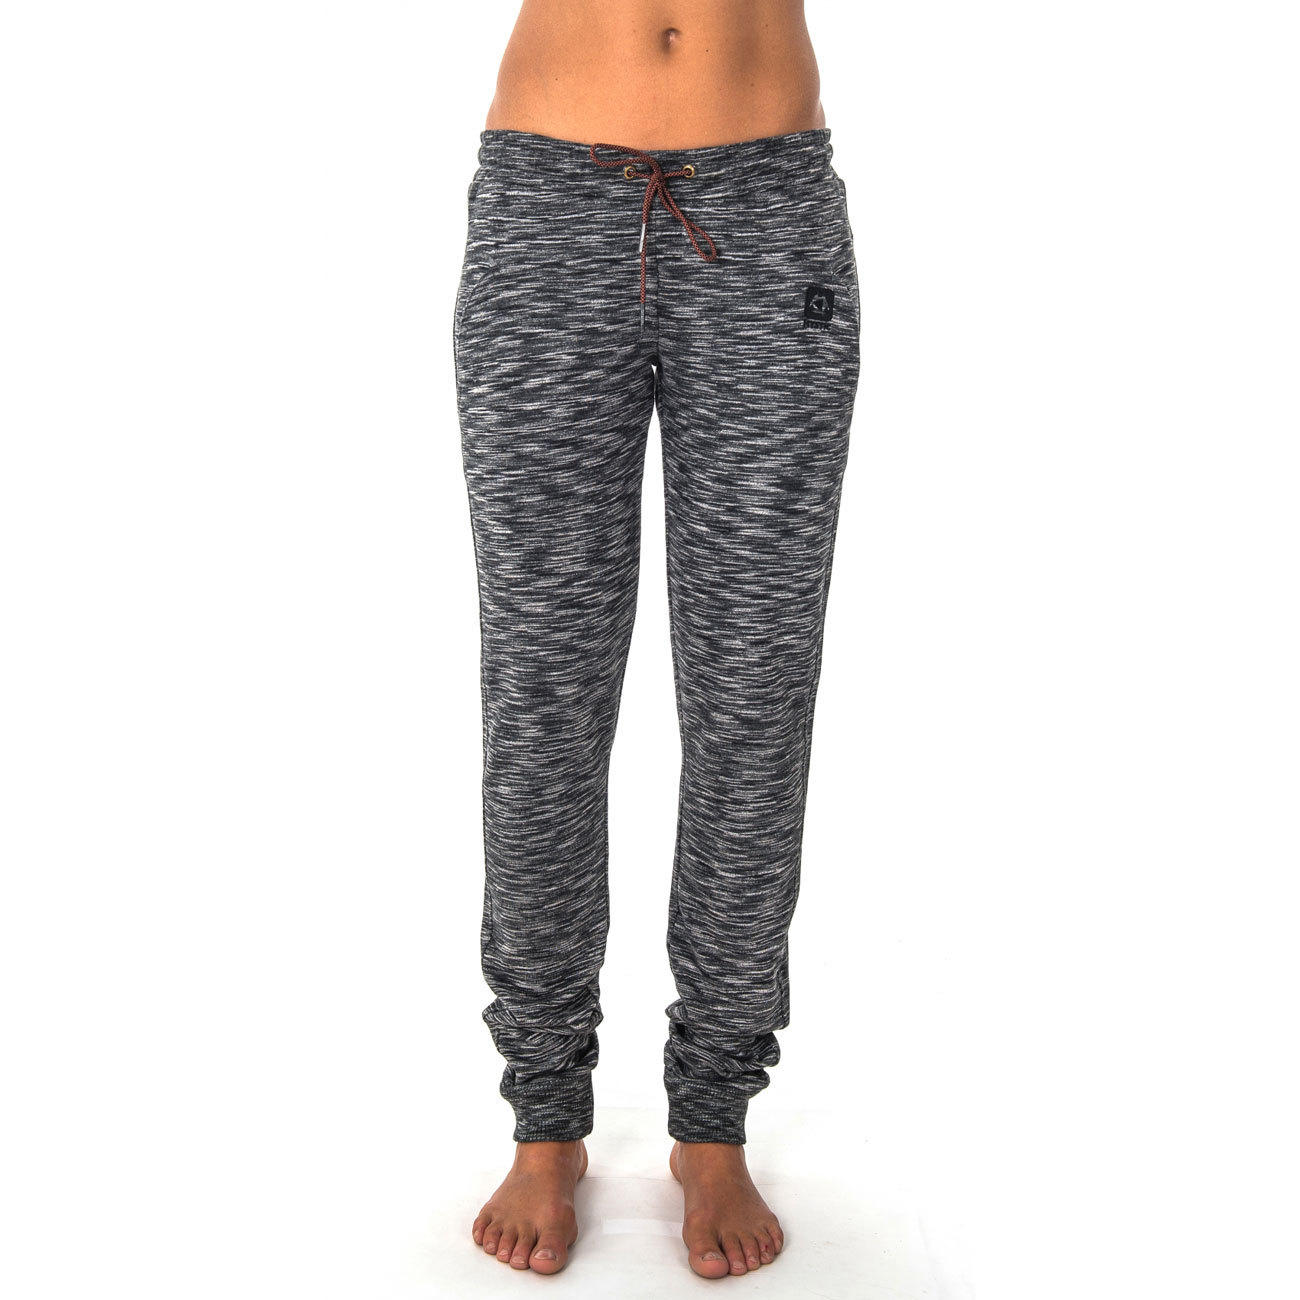 RELEASE SWEAT PANT